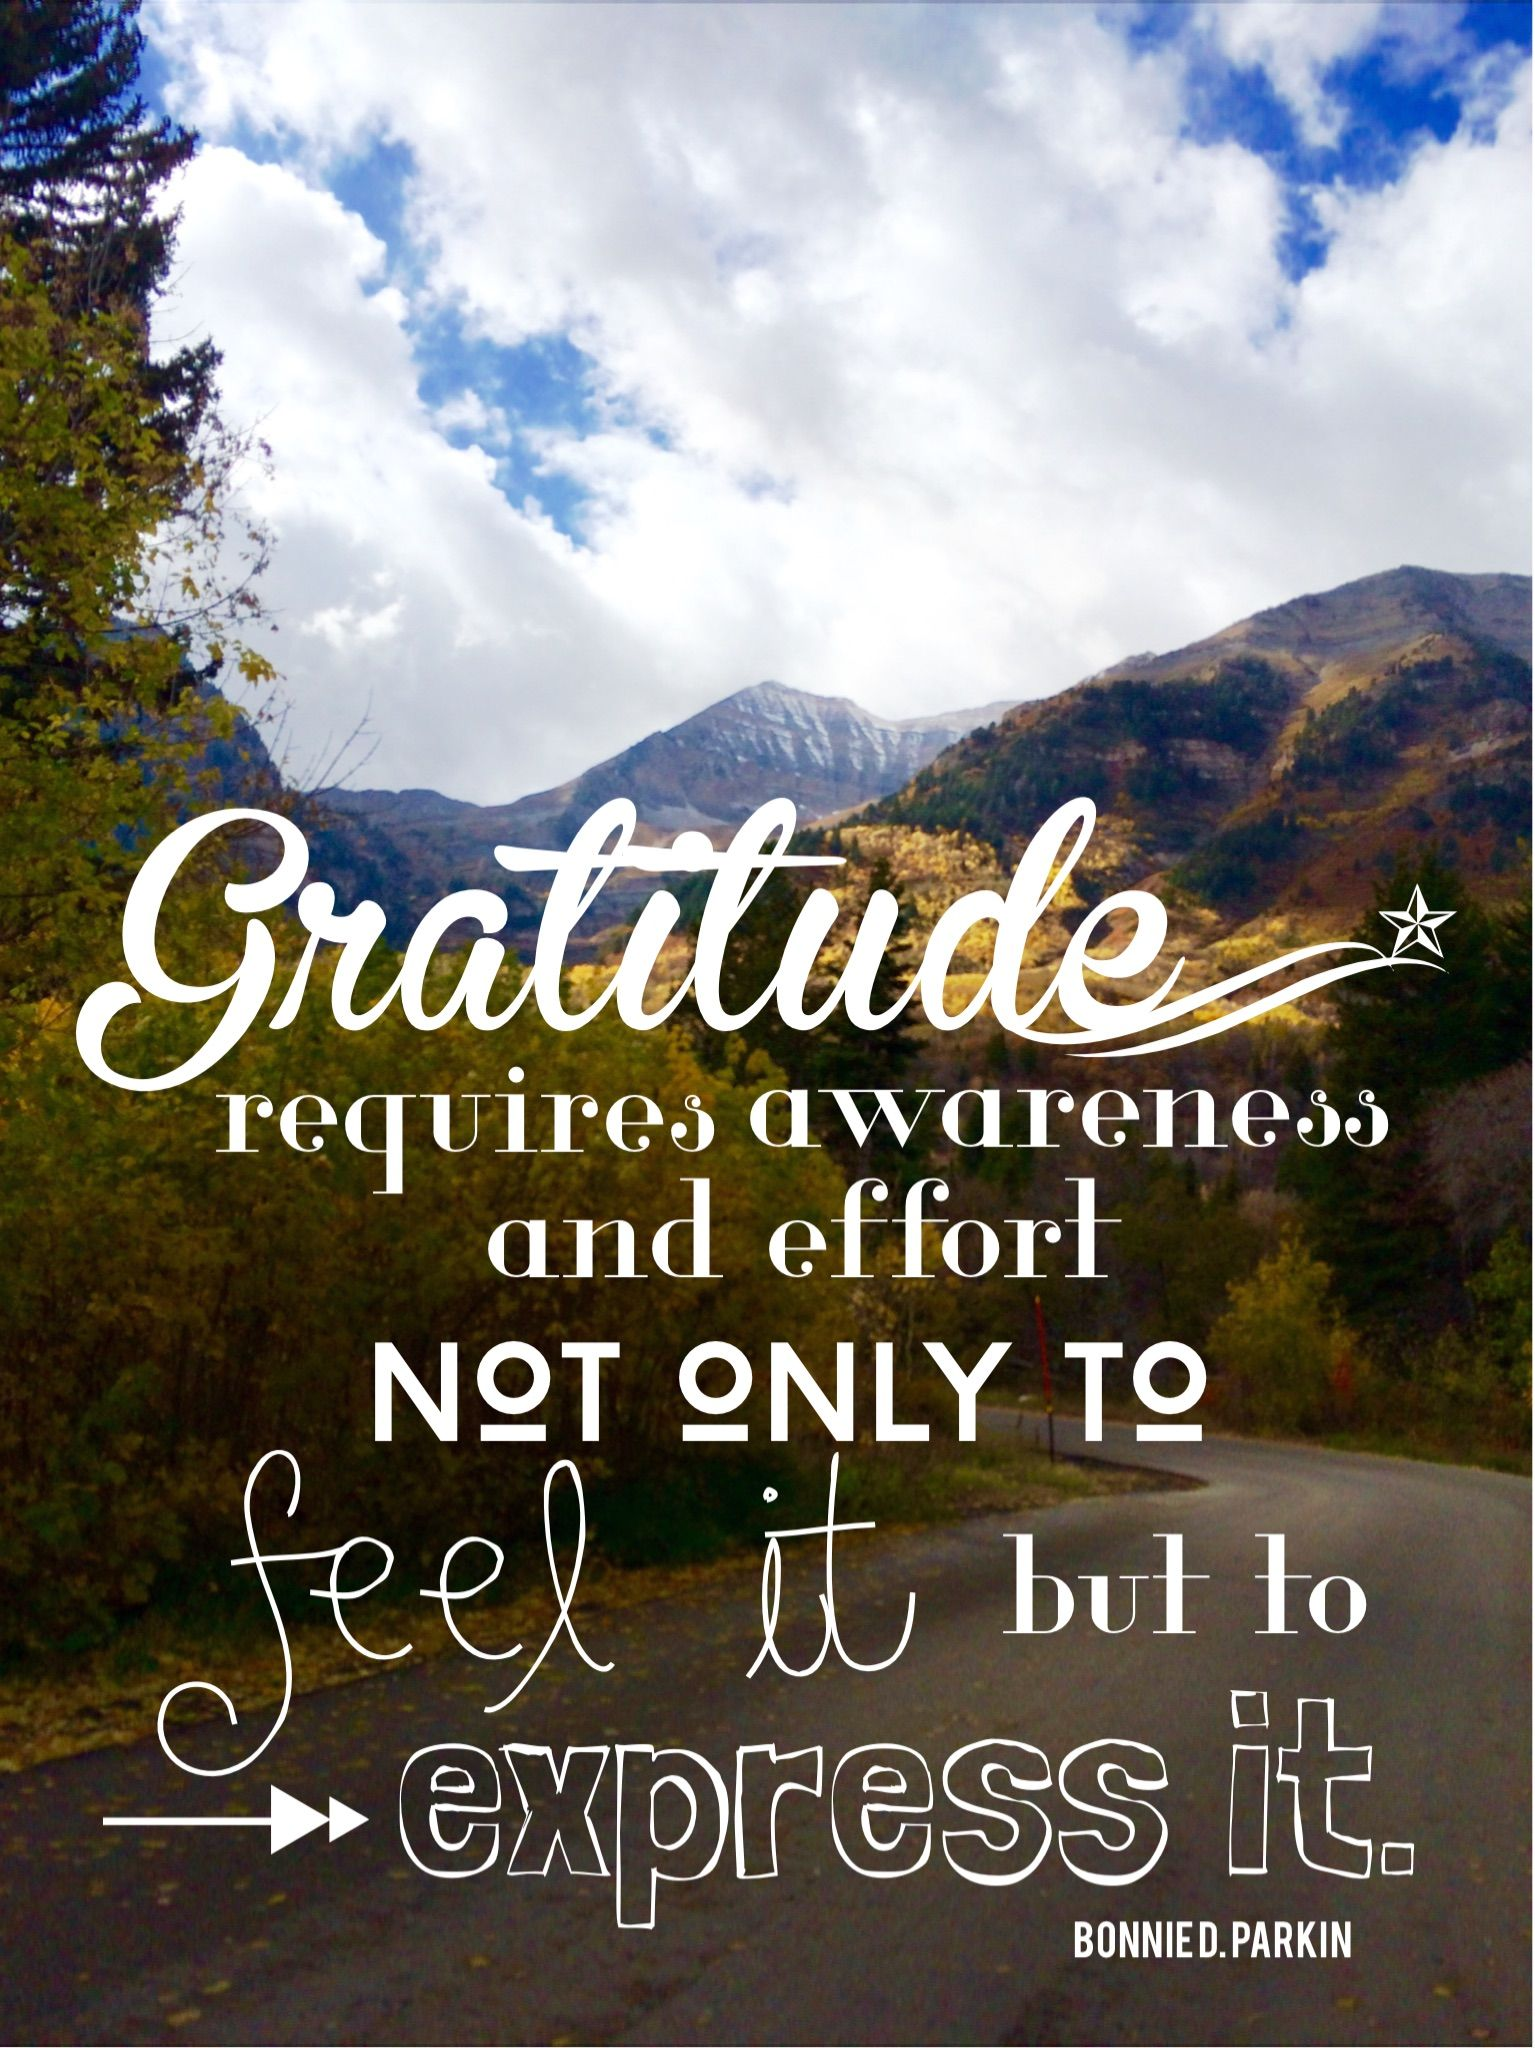 25 Quotes From LDS Leaders On #gratitude. #lds #quotes